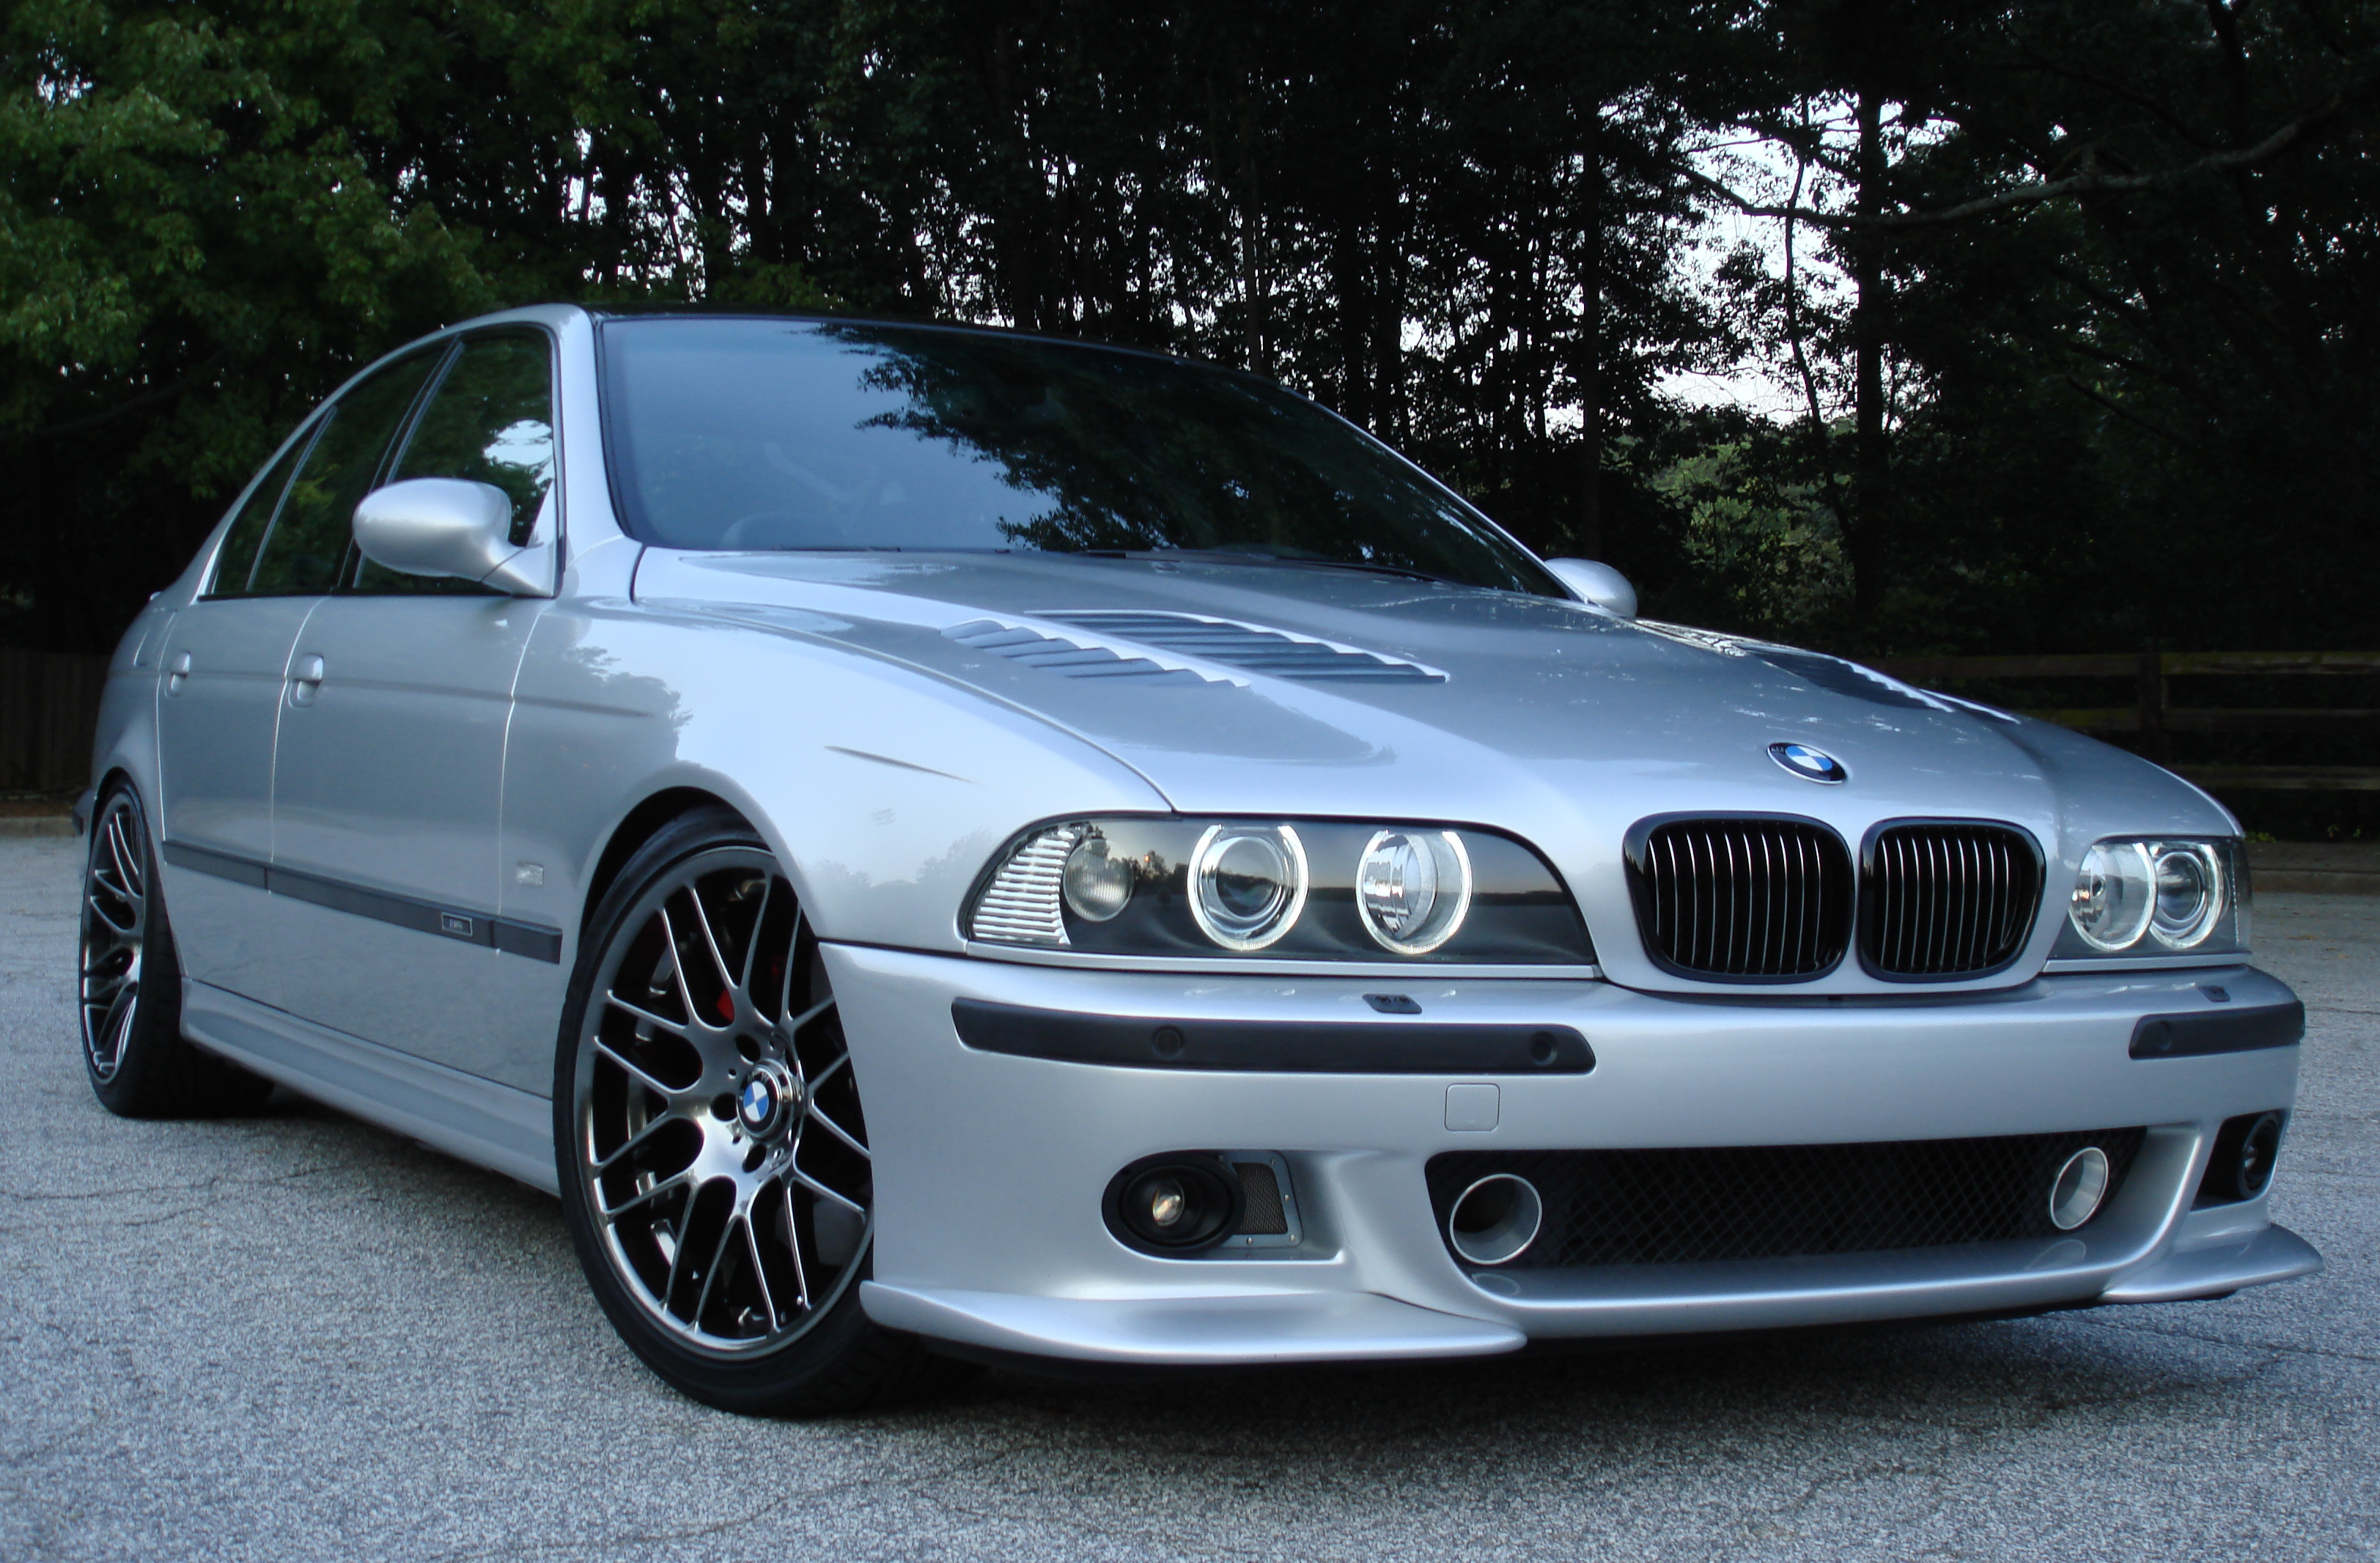 100513d1267497713t 19 vmr csl wheels hyper gunmetal dsc09349 bmw m5 e39 aftermarket wheels page 77 bmw m5 forum and m6  at mifinder.co